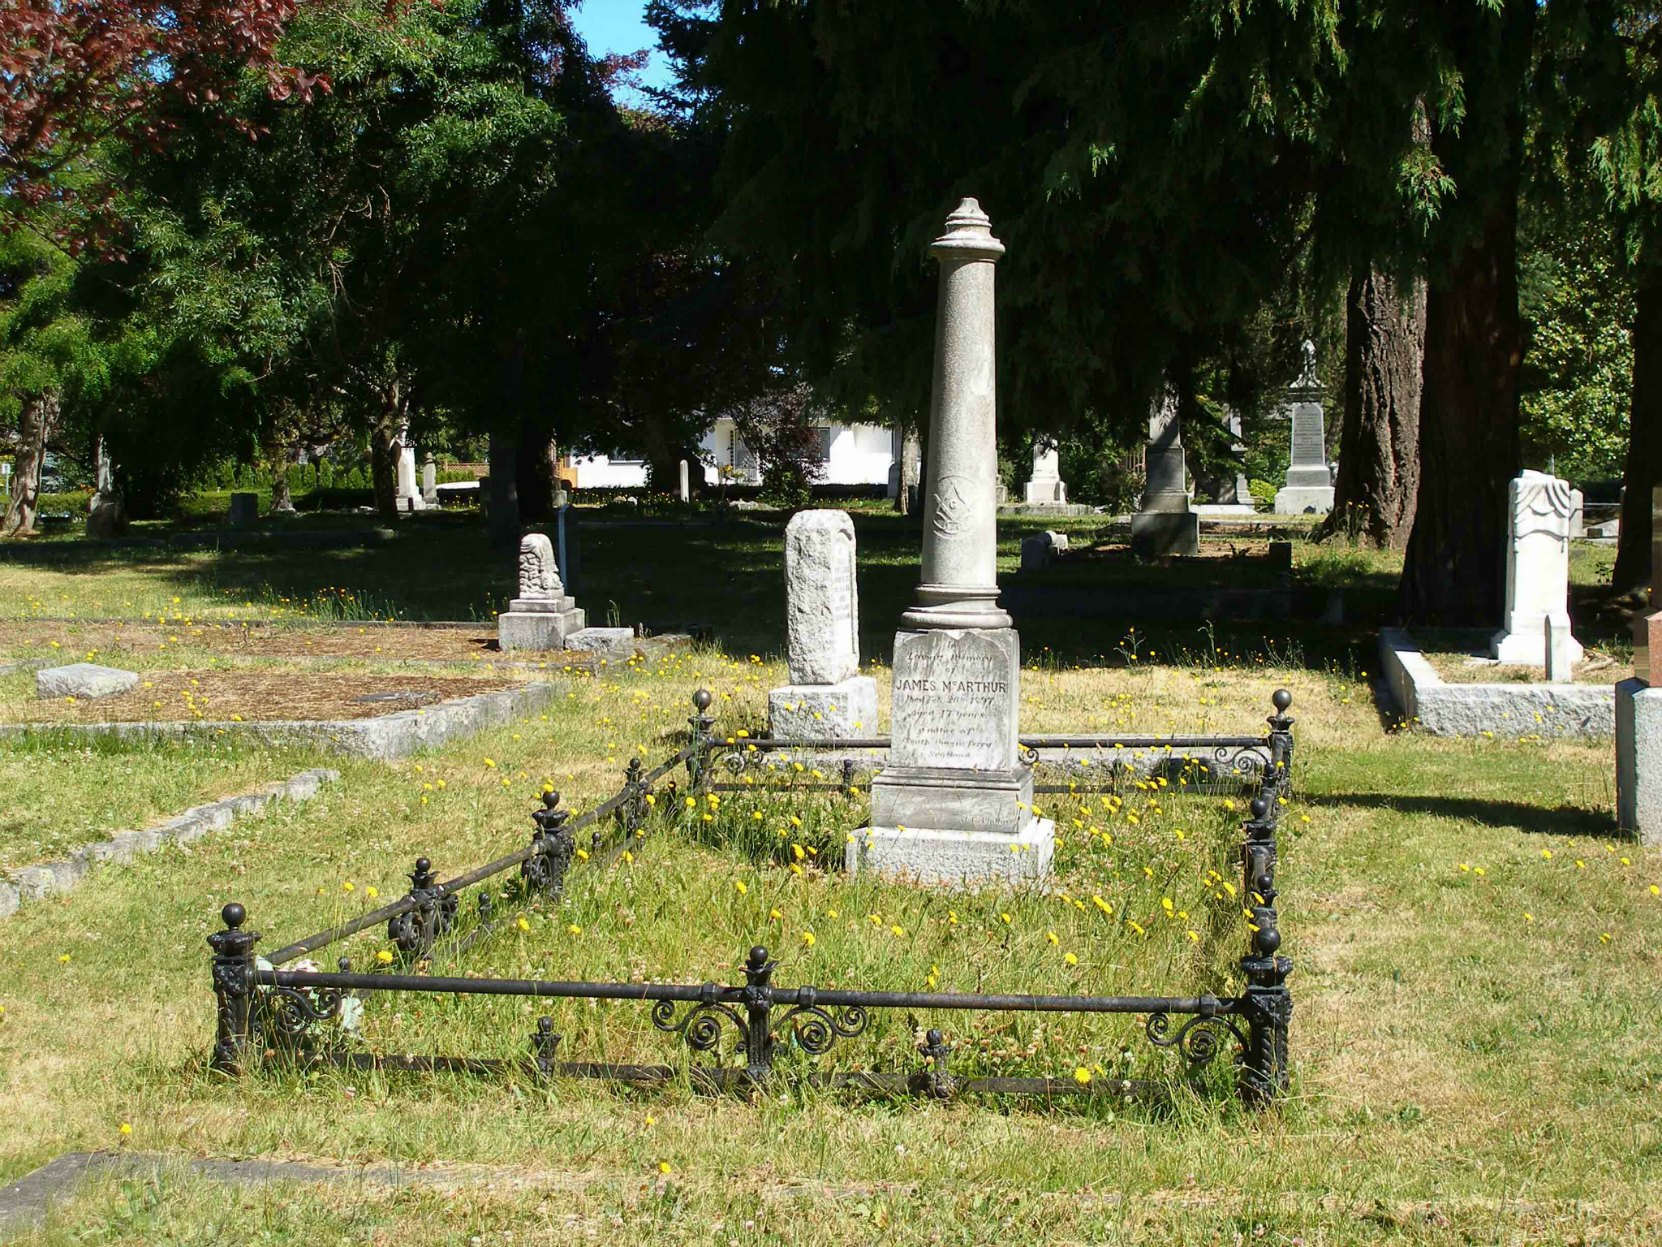 James McArthur grave, Ross Bay Cemetery, Victoria, B.C.